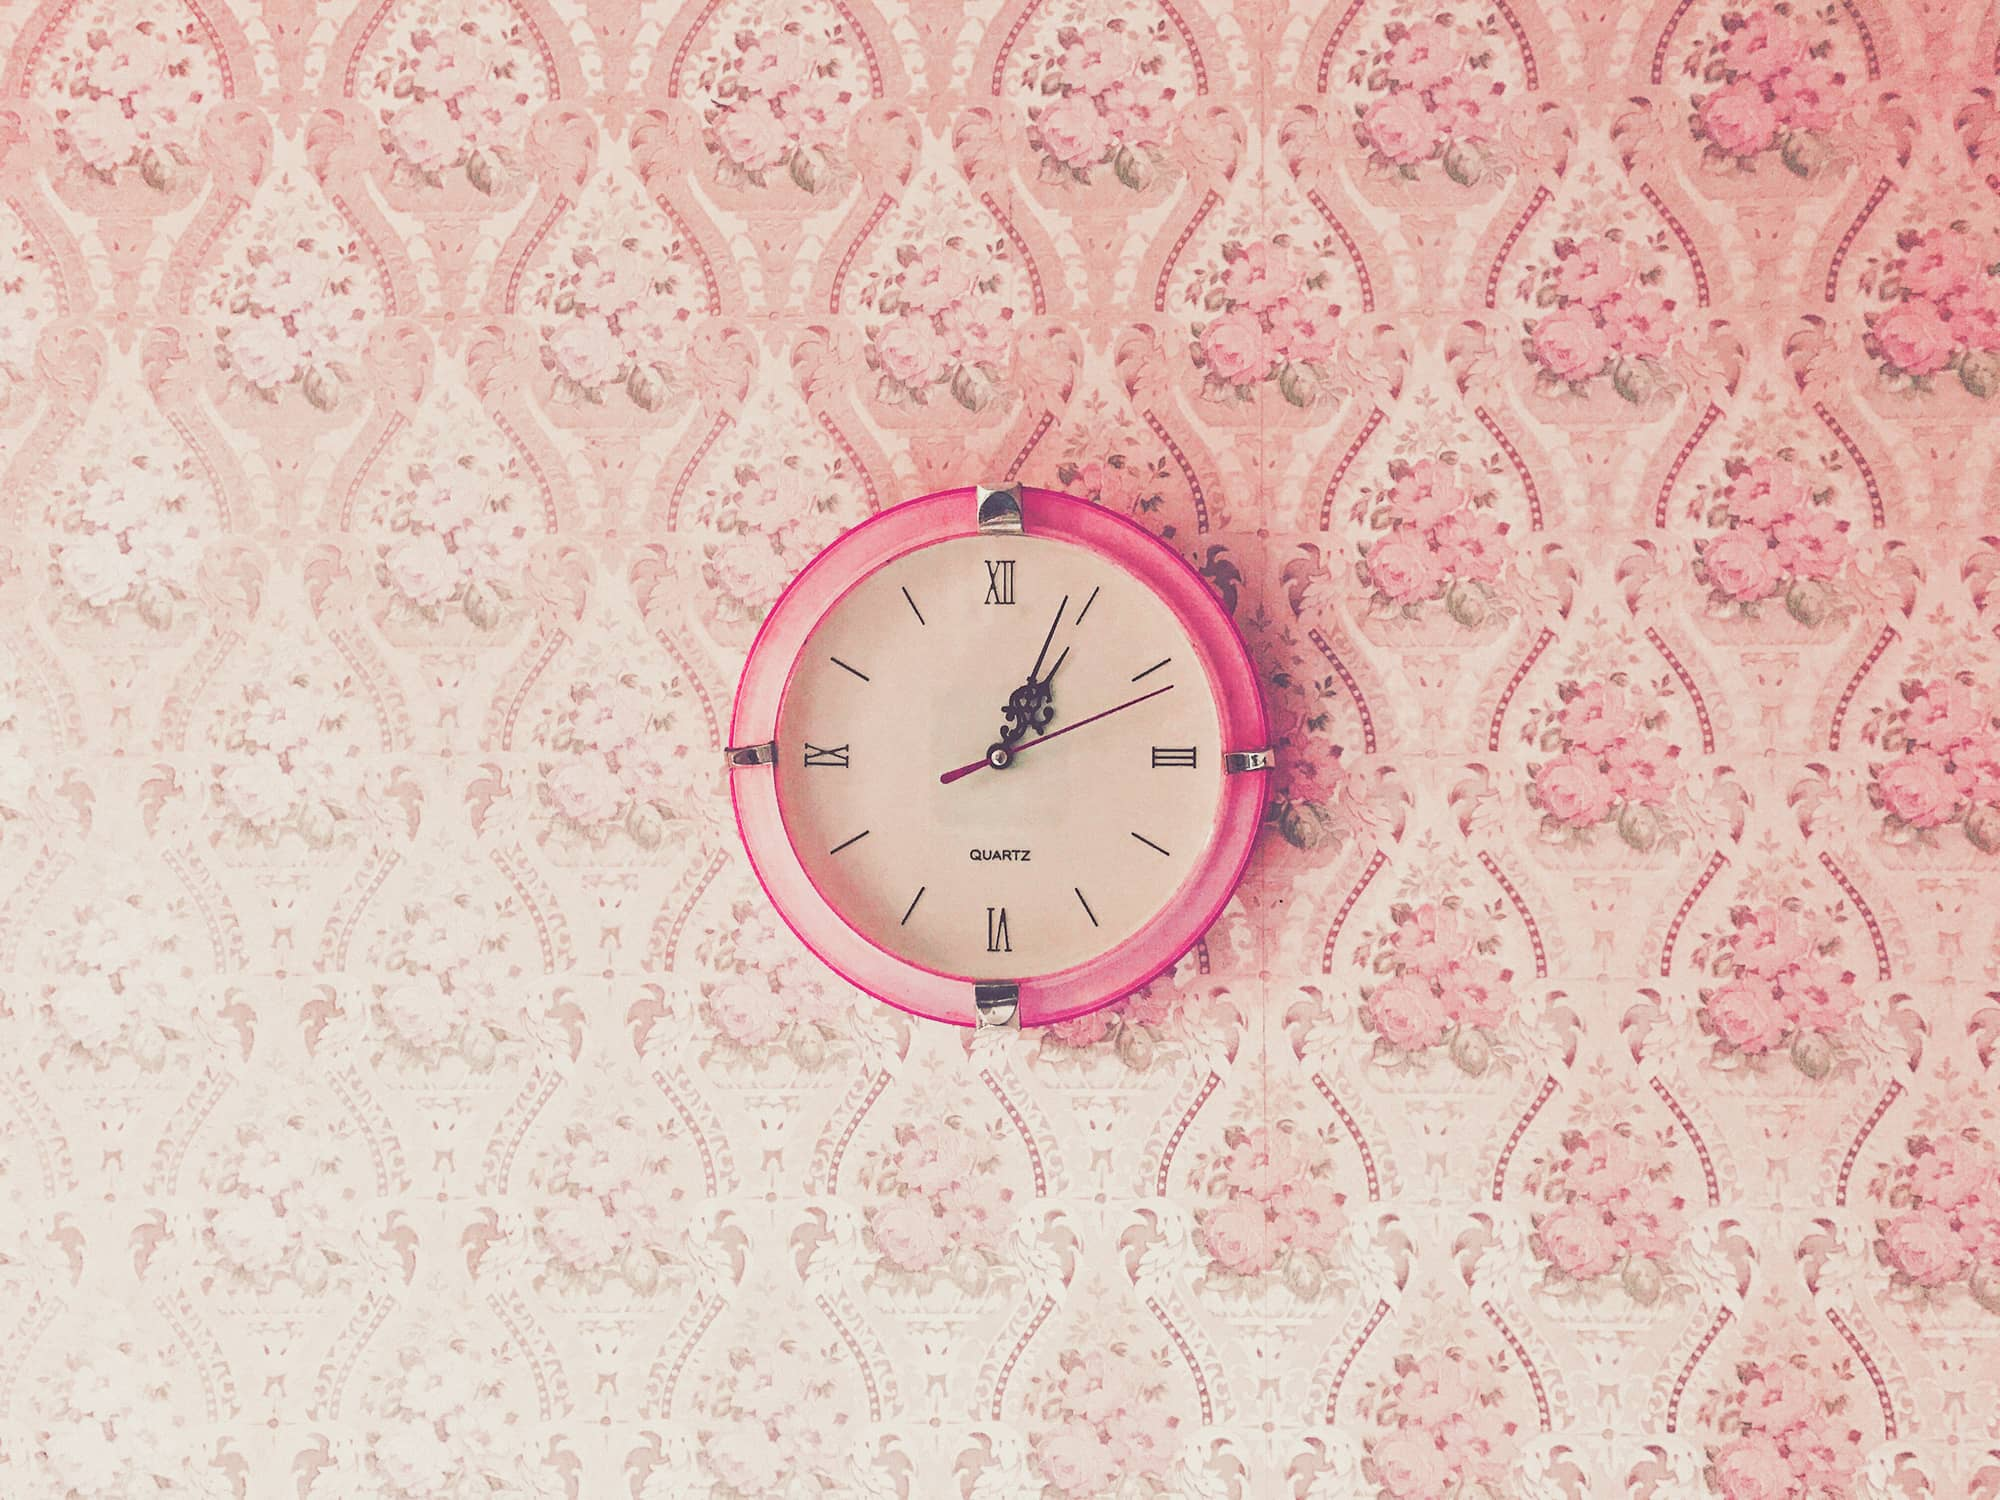 A pink clock with roman numerals hanging on a wall of garish wallpaper.